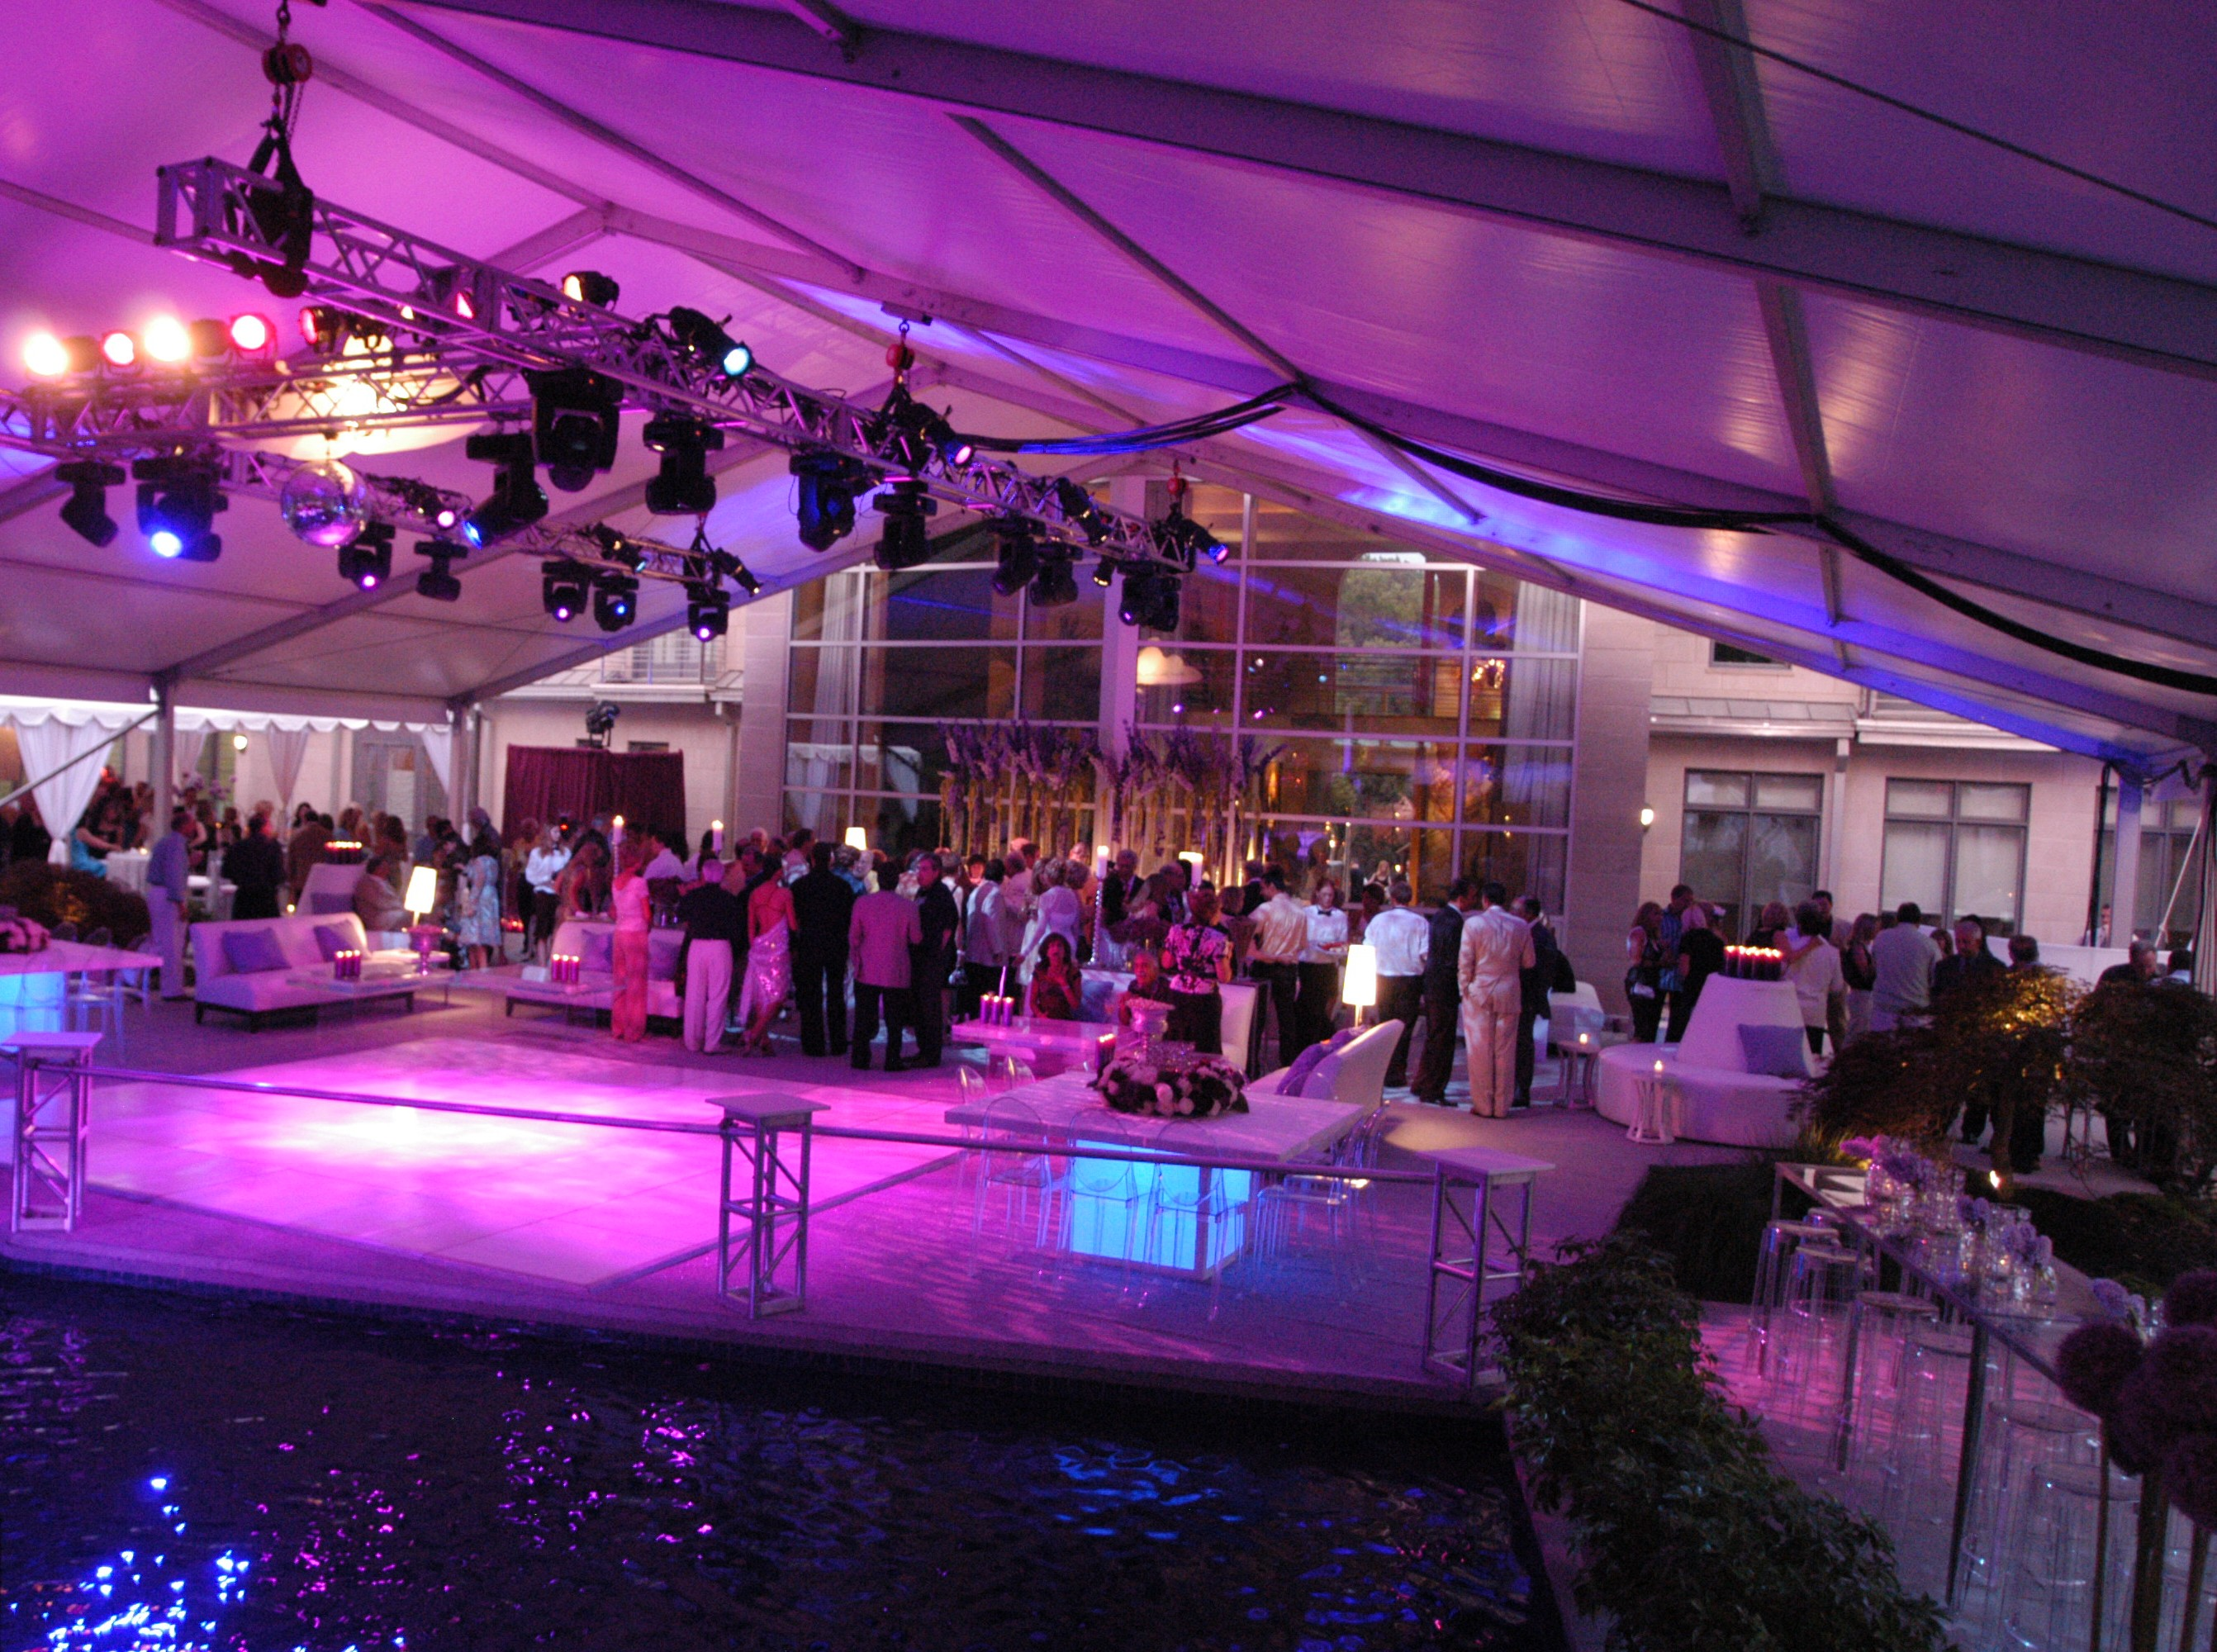 tents over pools outdoor parties in philadelphia suburbs cantilevered stages